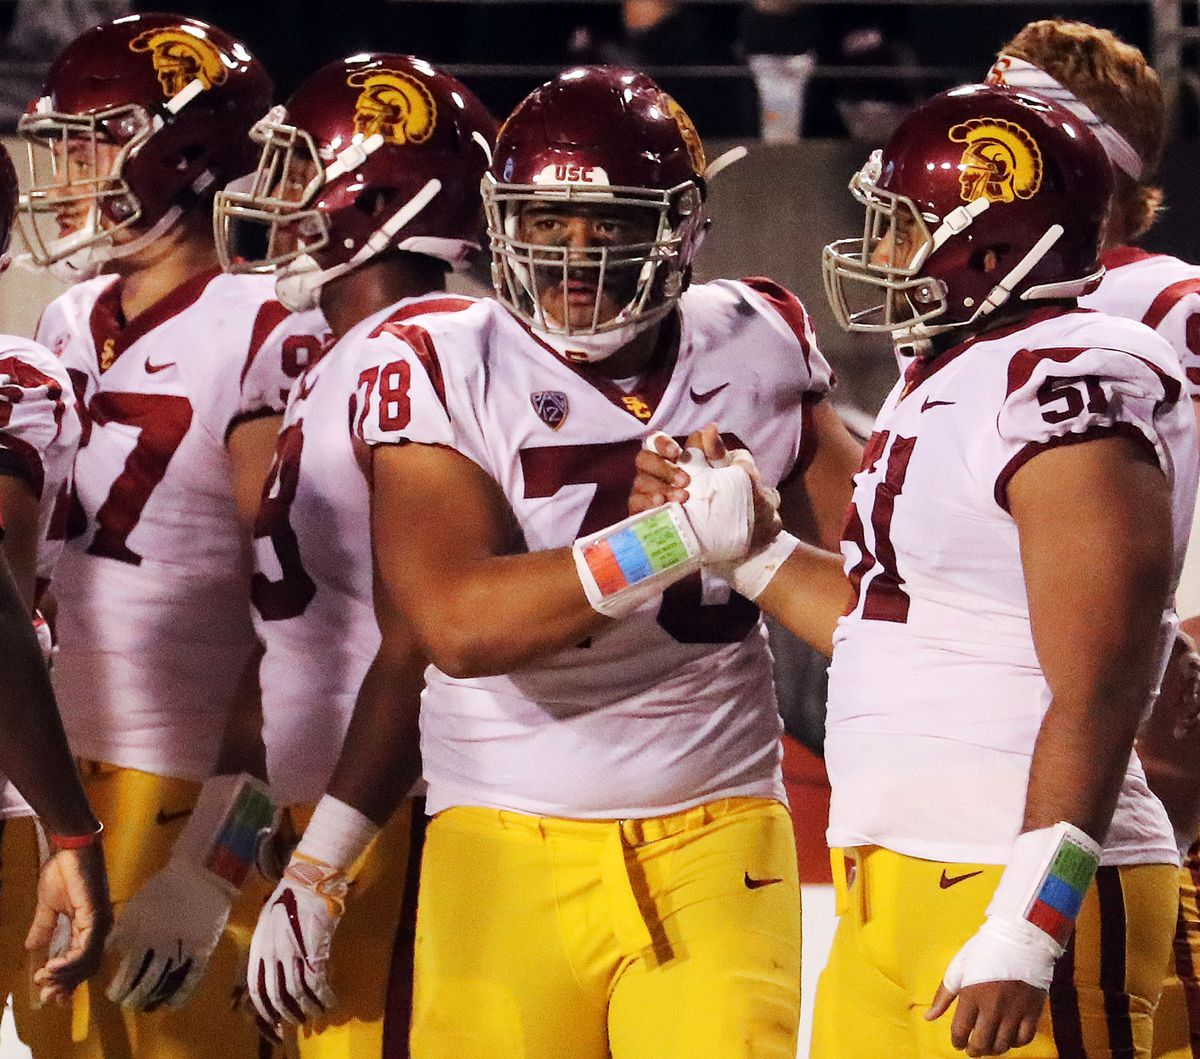 USC Trojans defensive lineman Jay Tufele gets ready to take the field against the Utah Utes during NCAA football in Salt Lake City on Saturday, Oct. 20, 2018.